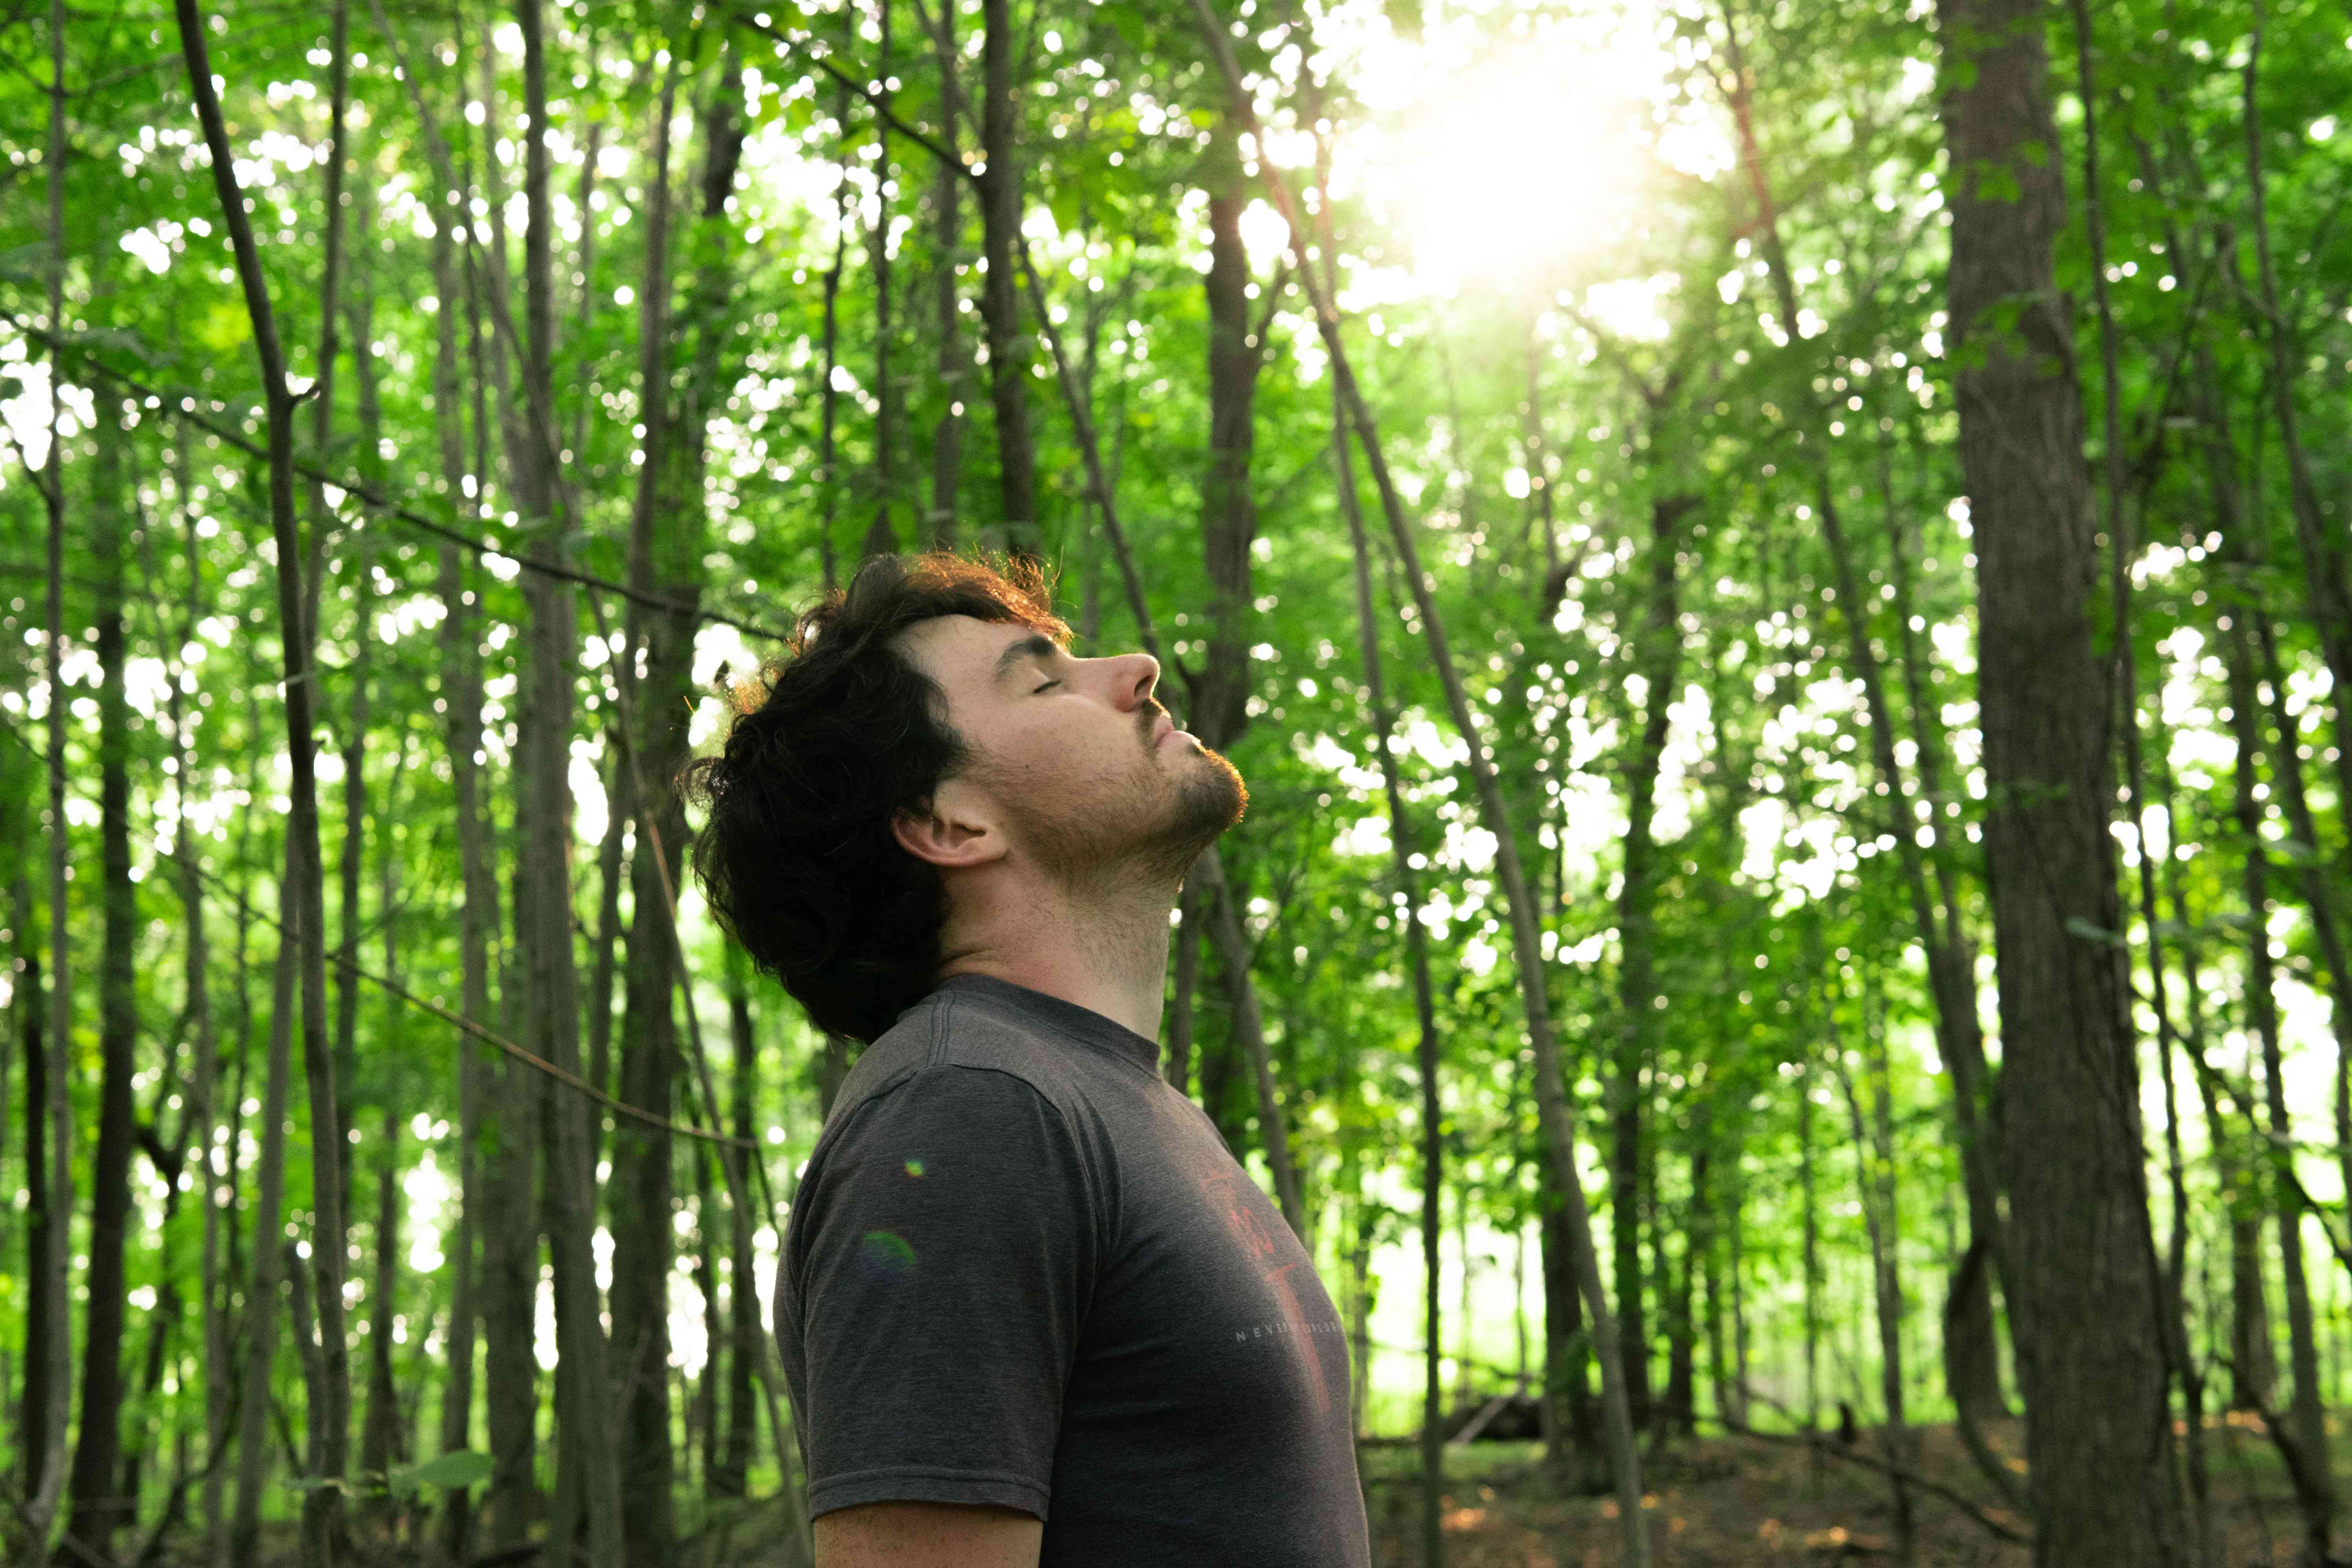 guy breathes in forest background